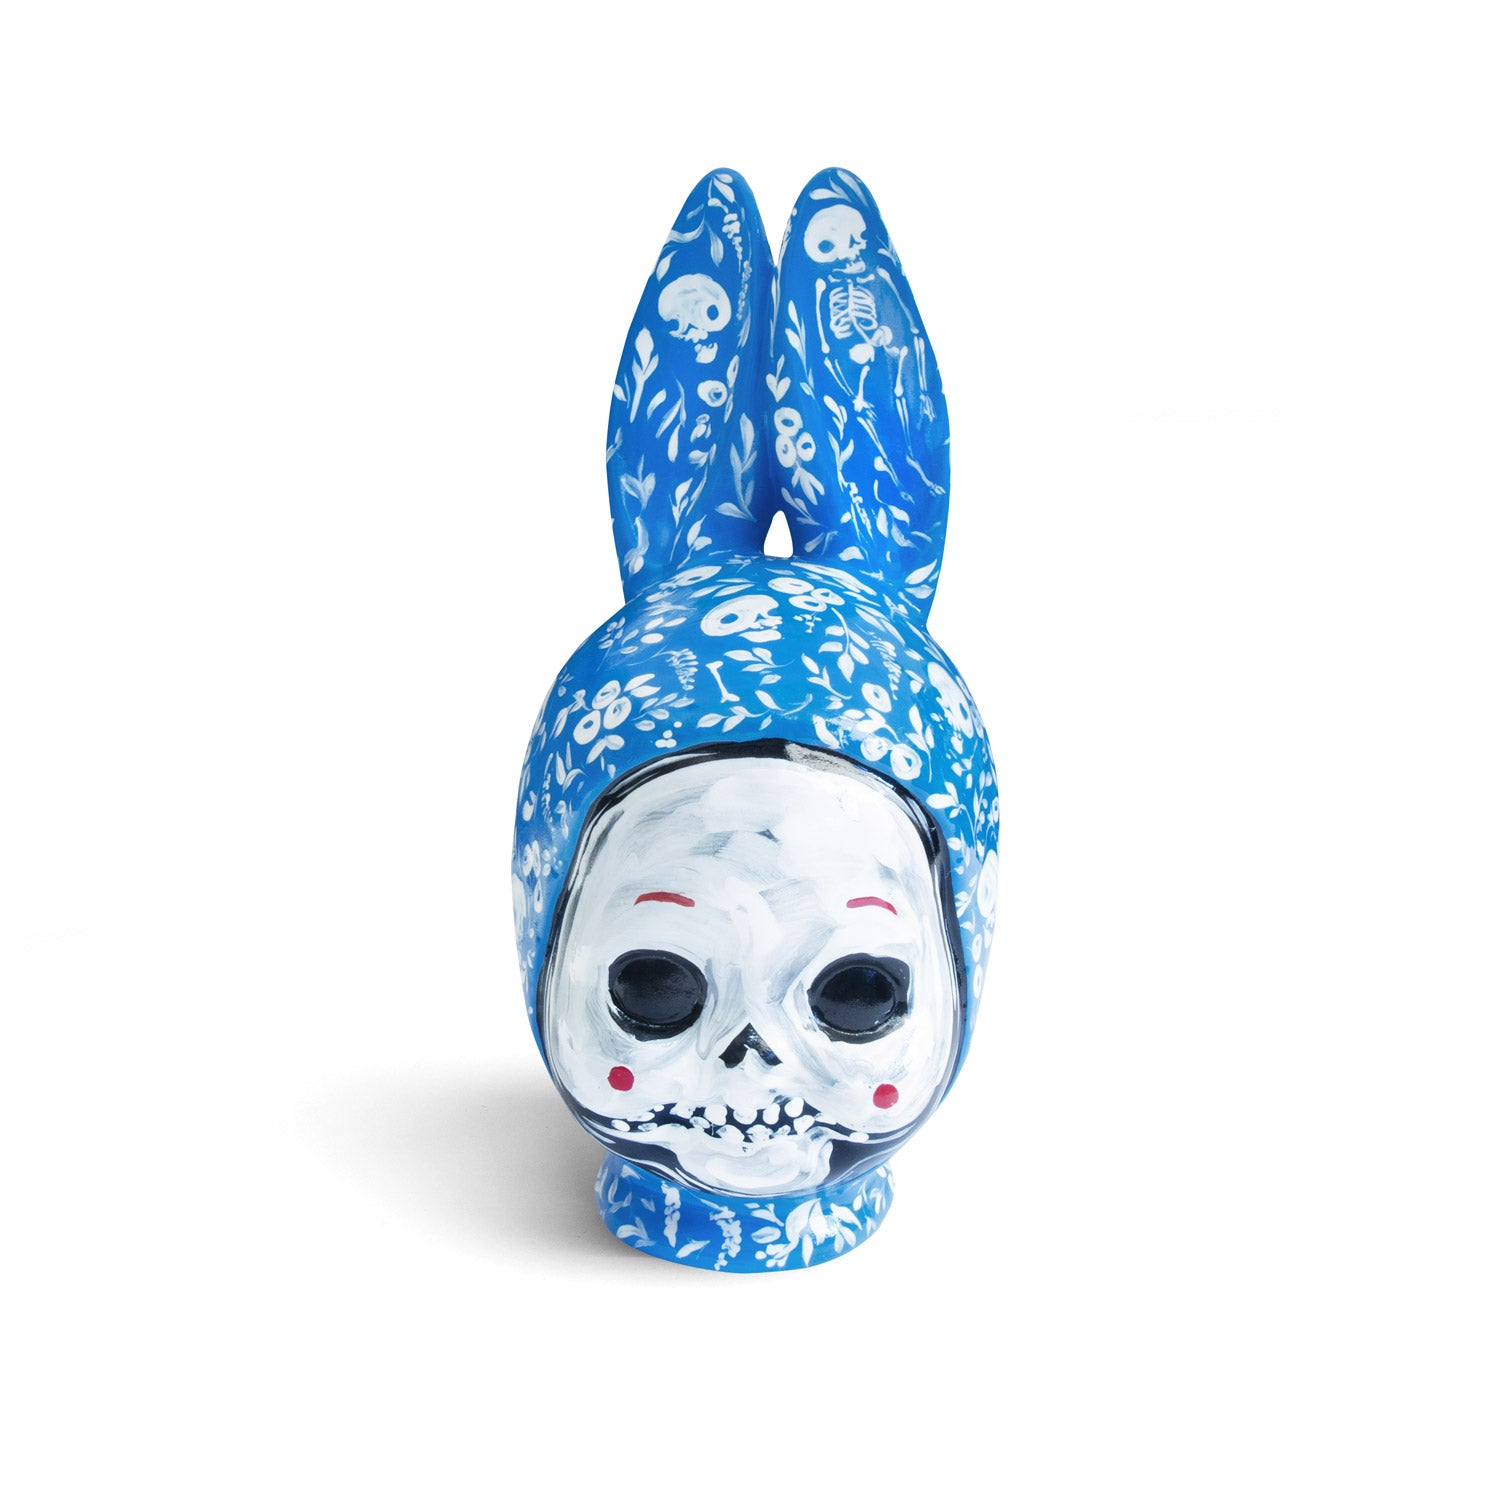 Ceramic kewpie head - blue